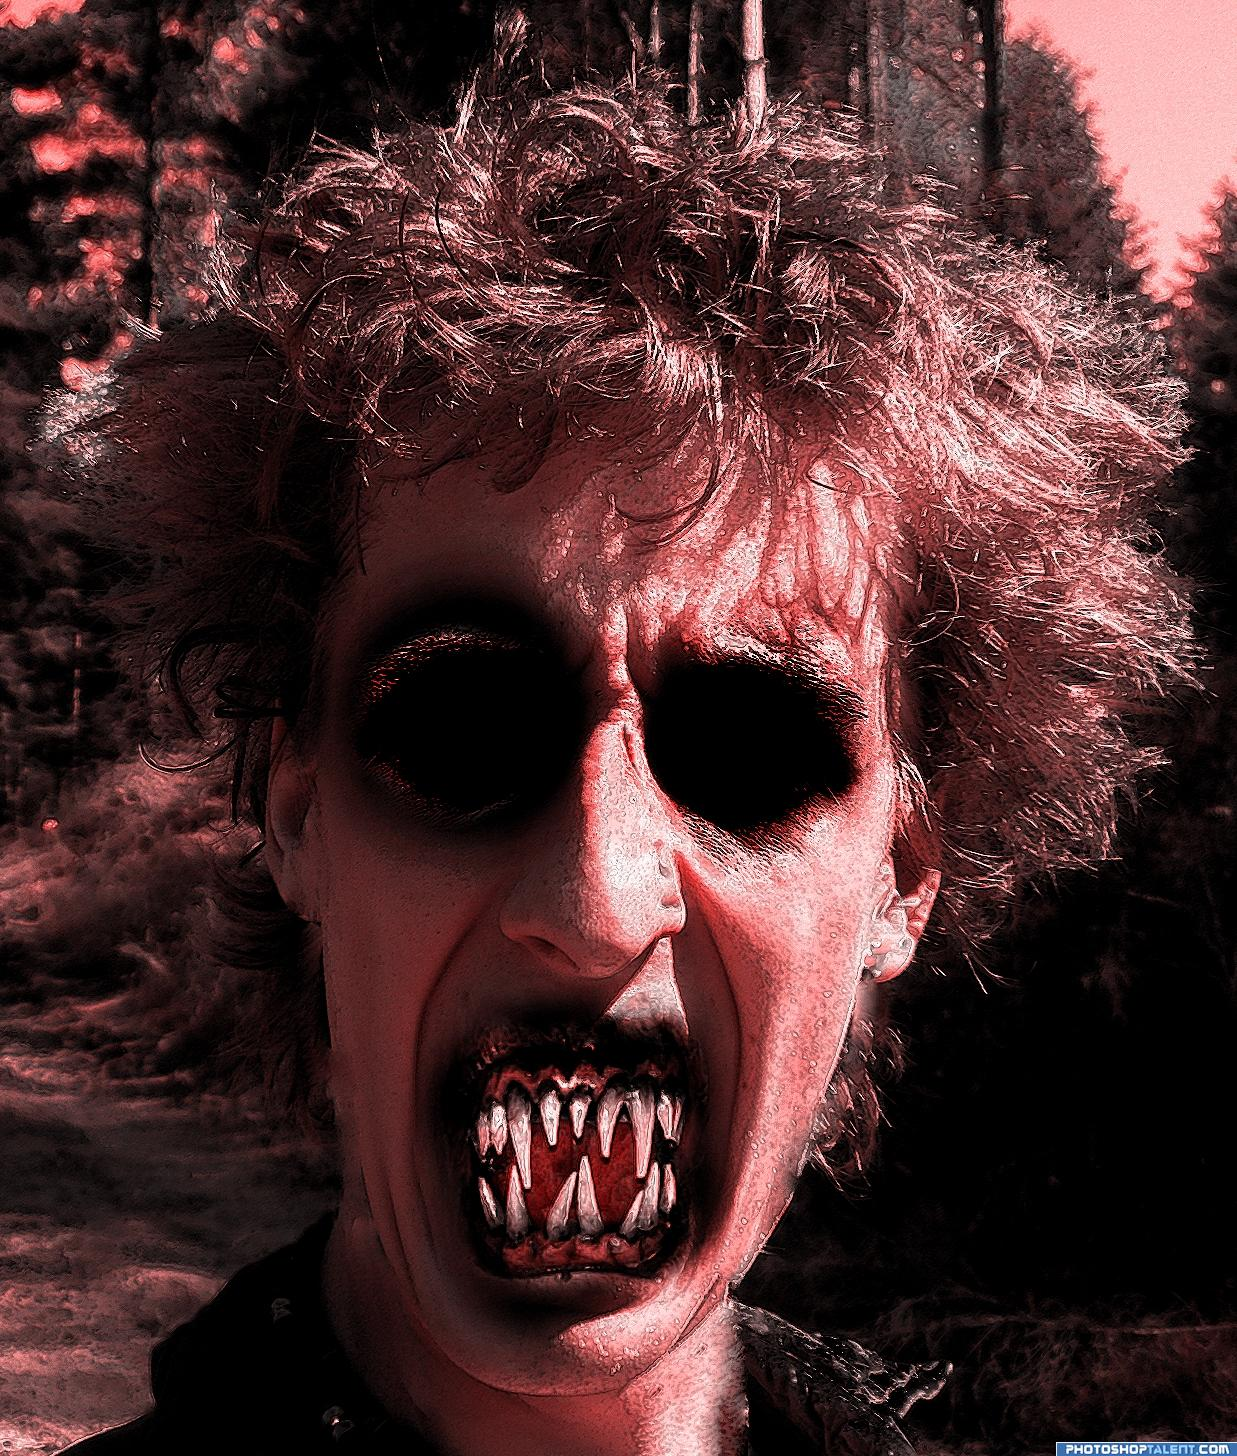 Demonic Me picture, by Ory for: ugly smile photoshop